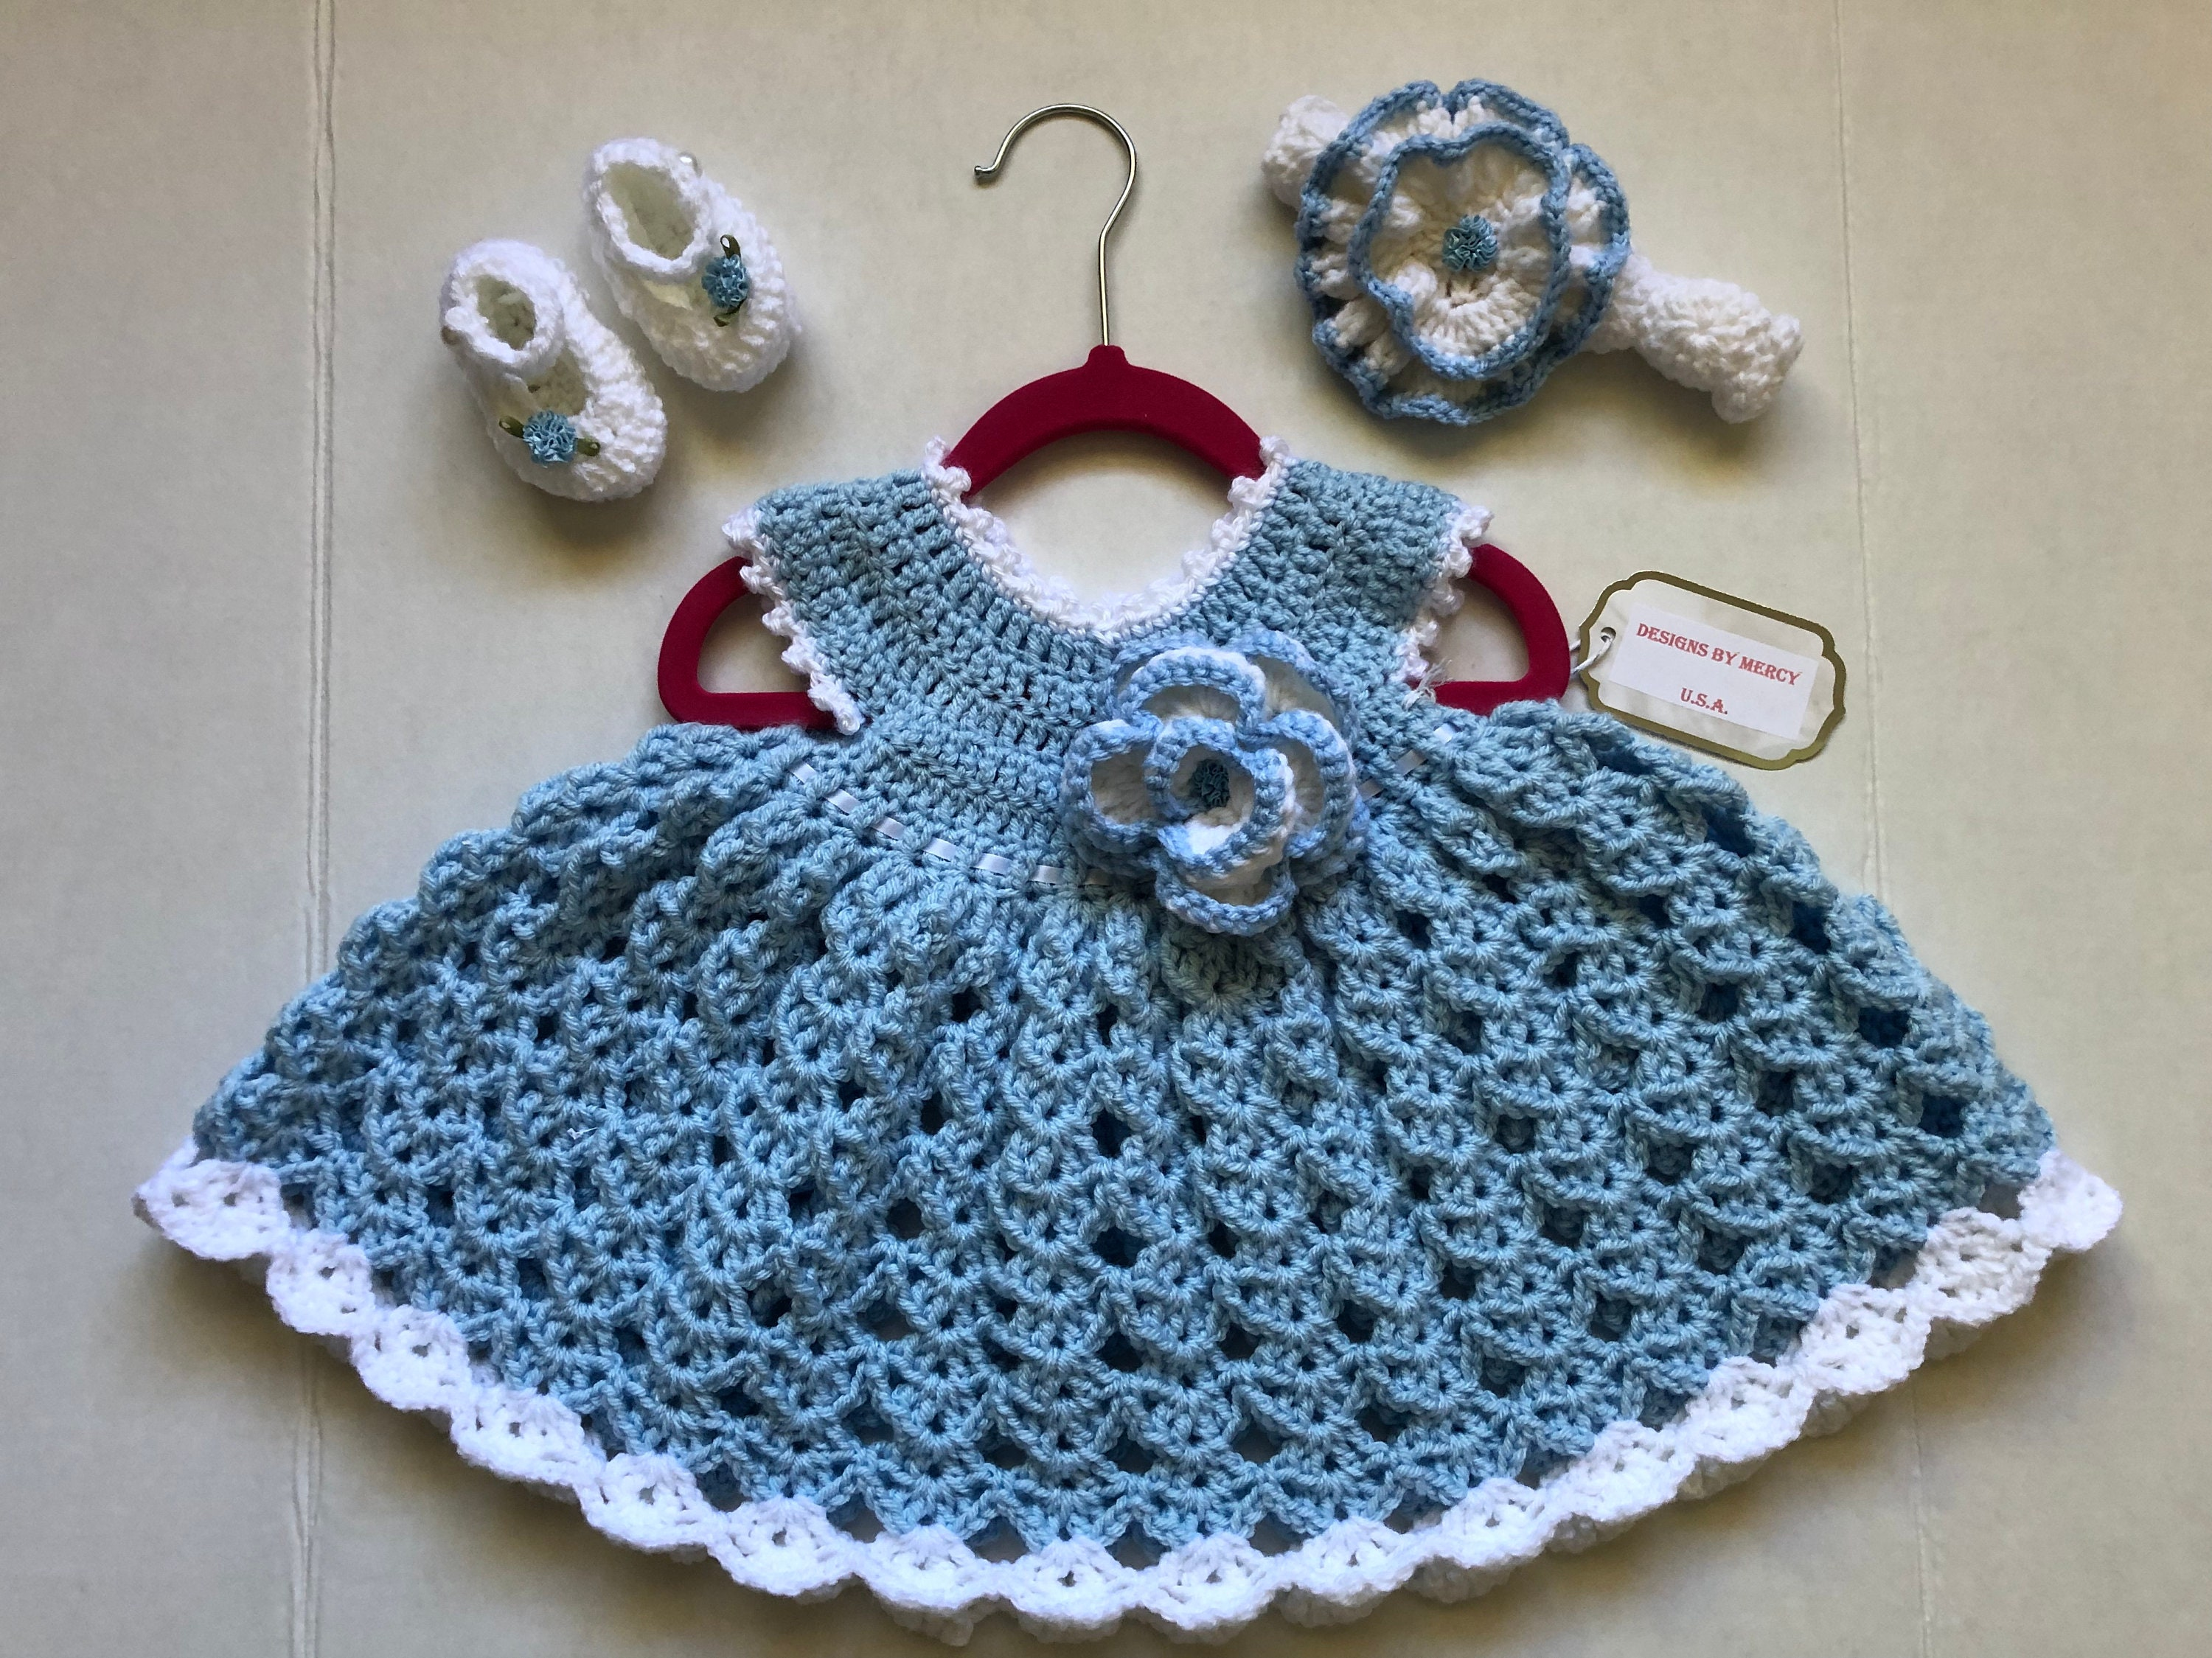 b9a7b9c578c1 Baby Crochet Dress Blue Crochet Baby Girl Outfit White Crochet